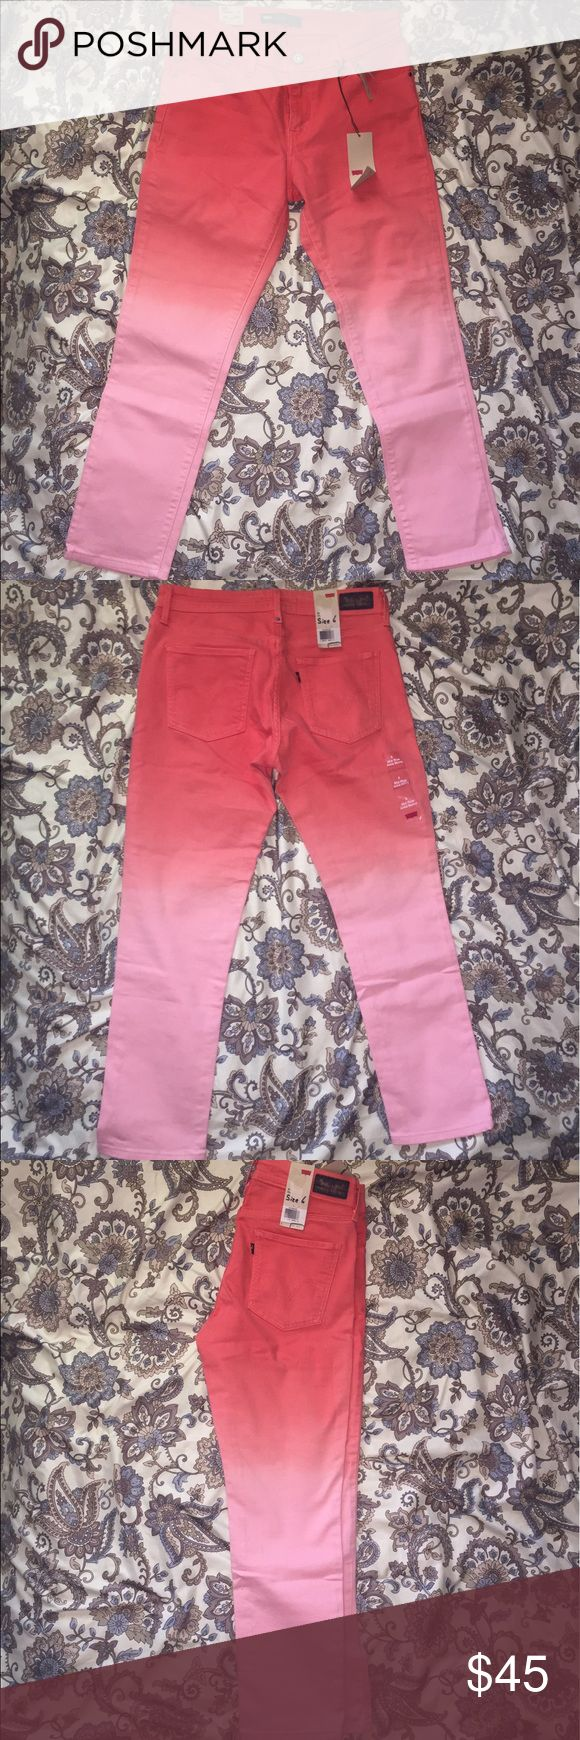 💕Levi Peach Ombrè MidRise Ankle Skinny Jeans💕 NWT, size 6, Ankle length! I'm 5'6 and this style falls right at the top of my ankle! 🚨PRICE FIRM Levi's Jeans Skinny